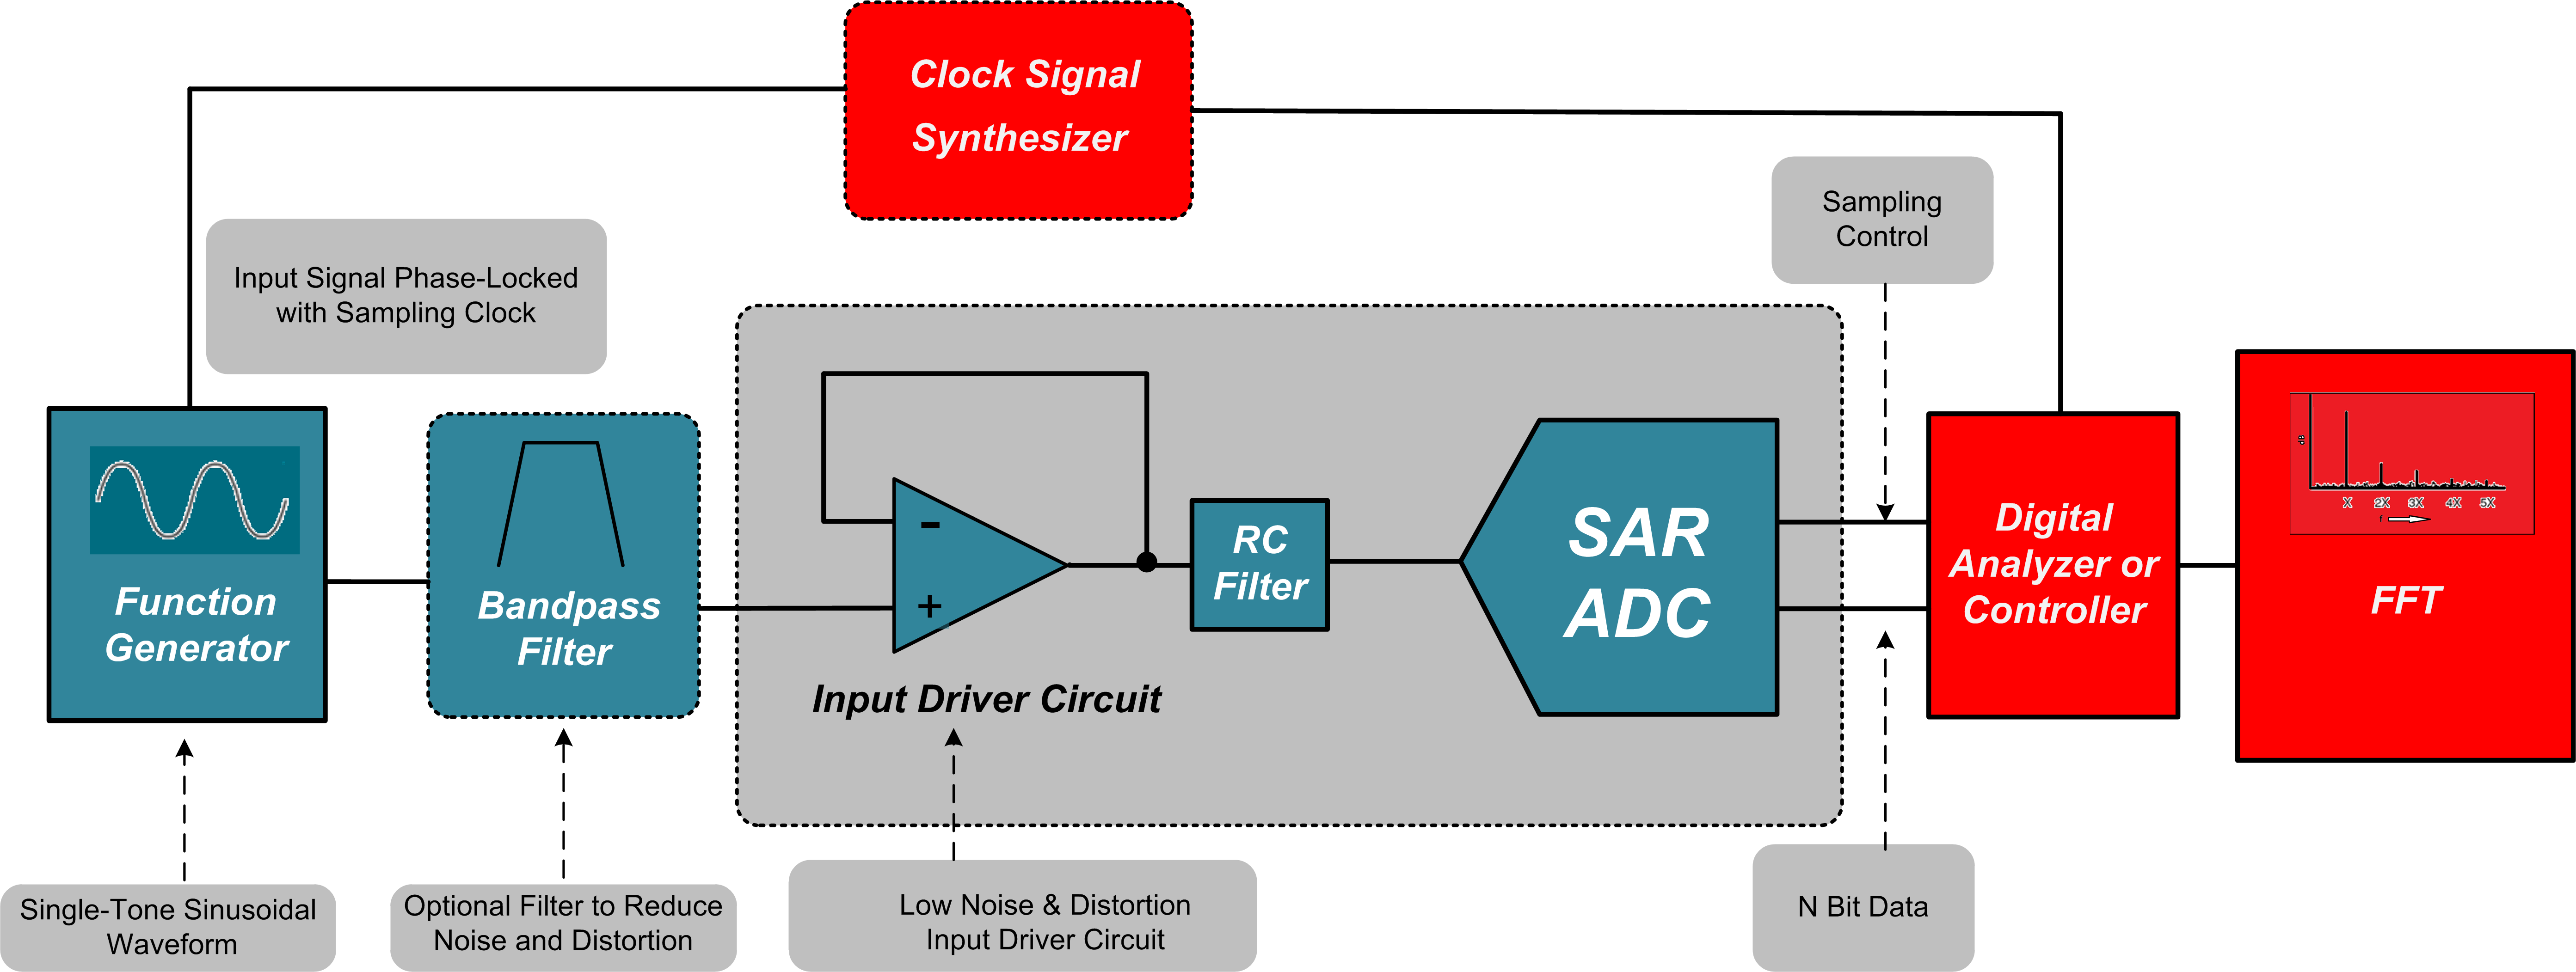 Function Generator For Windows : Leverage coherent sampling and fft windows when evaluating